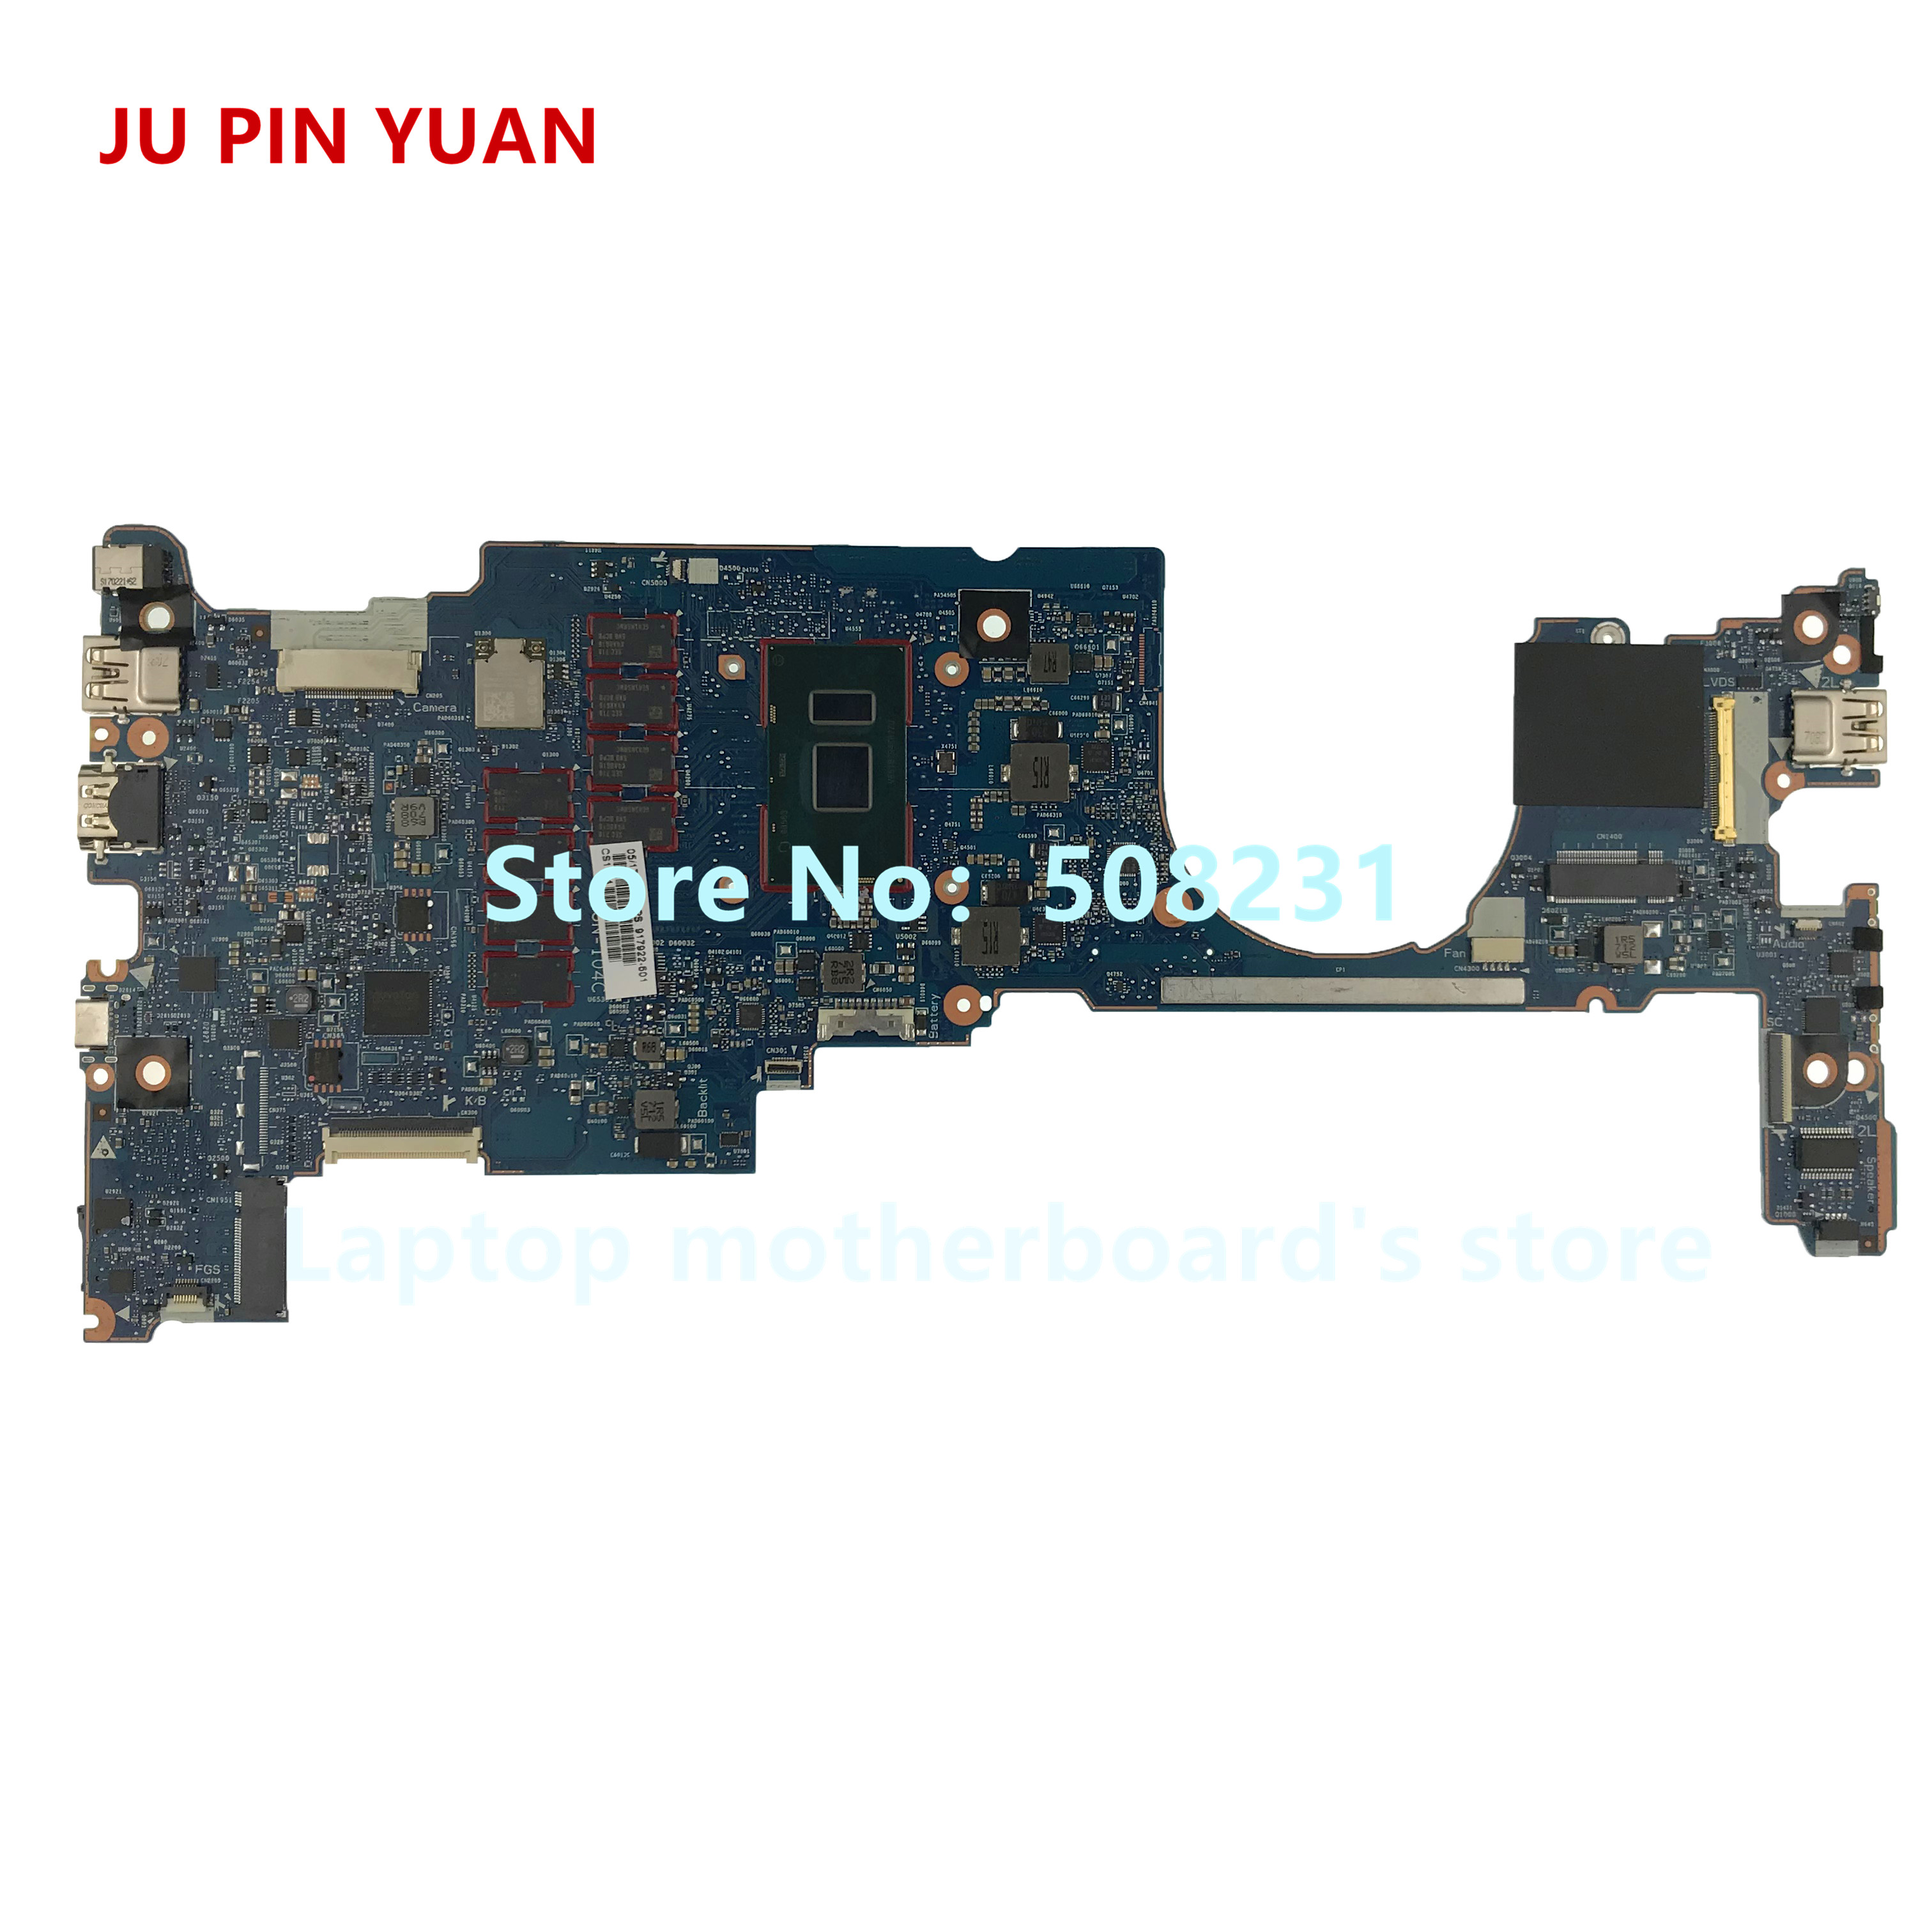 JU PIN YUAN 917922-601 OLDMAN-6050A2848001-MB-A01 Laptop motherboard For HP EliteBook x360 1030 G2 PC i5-7200U 8GB fully TestedJU PIN YUAN 917922-601 OLDMAN-6050A2848001-MB-A01 Laptop motherboard For HP EliteBook x360 1030 G2 PC i5-7200U 8GB fully Tested